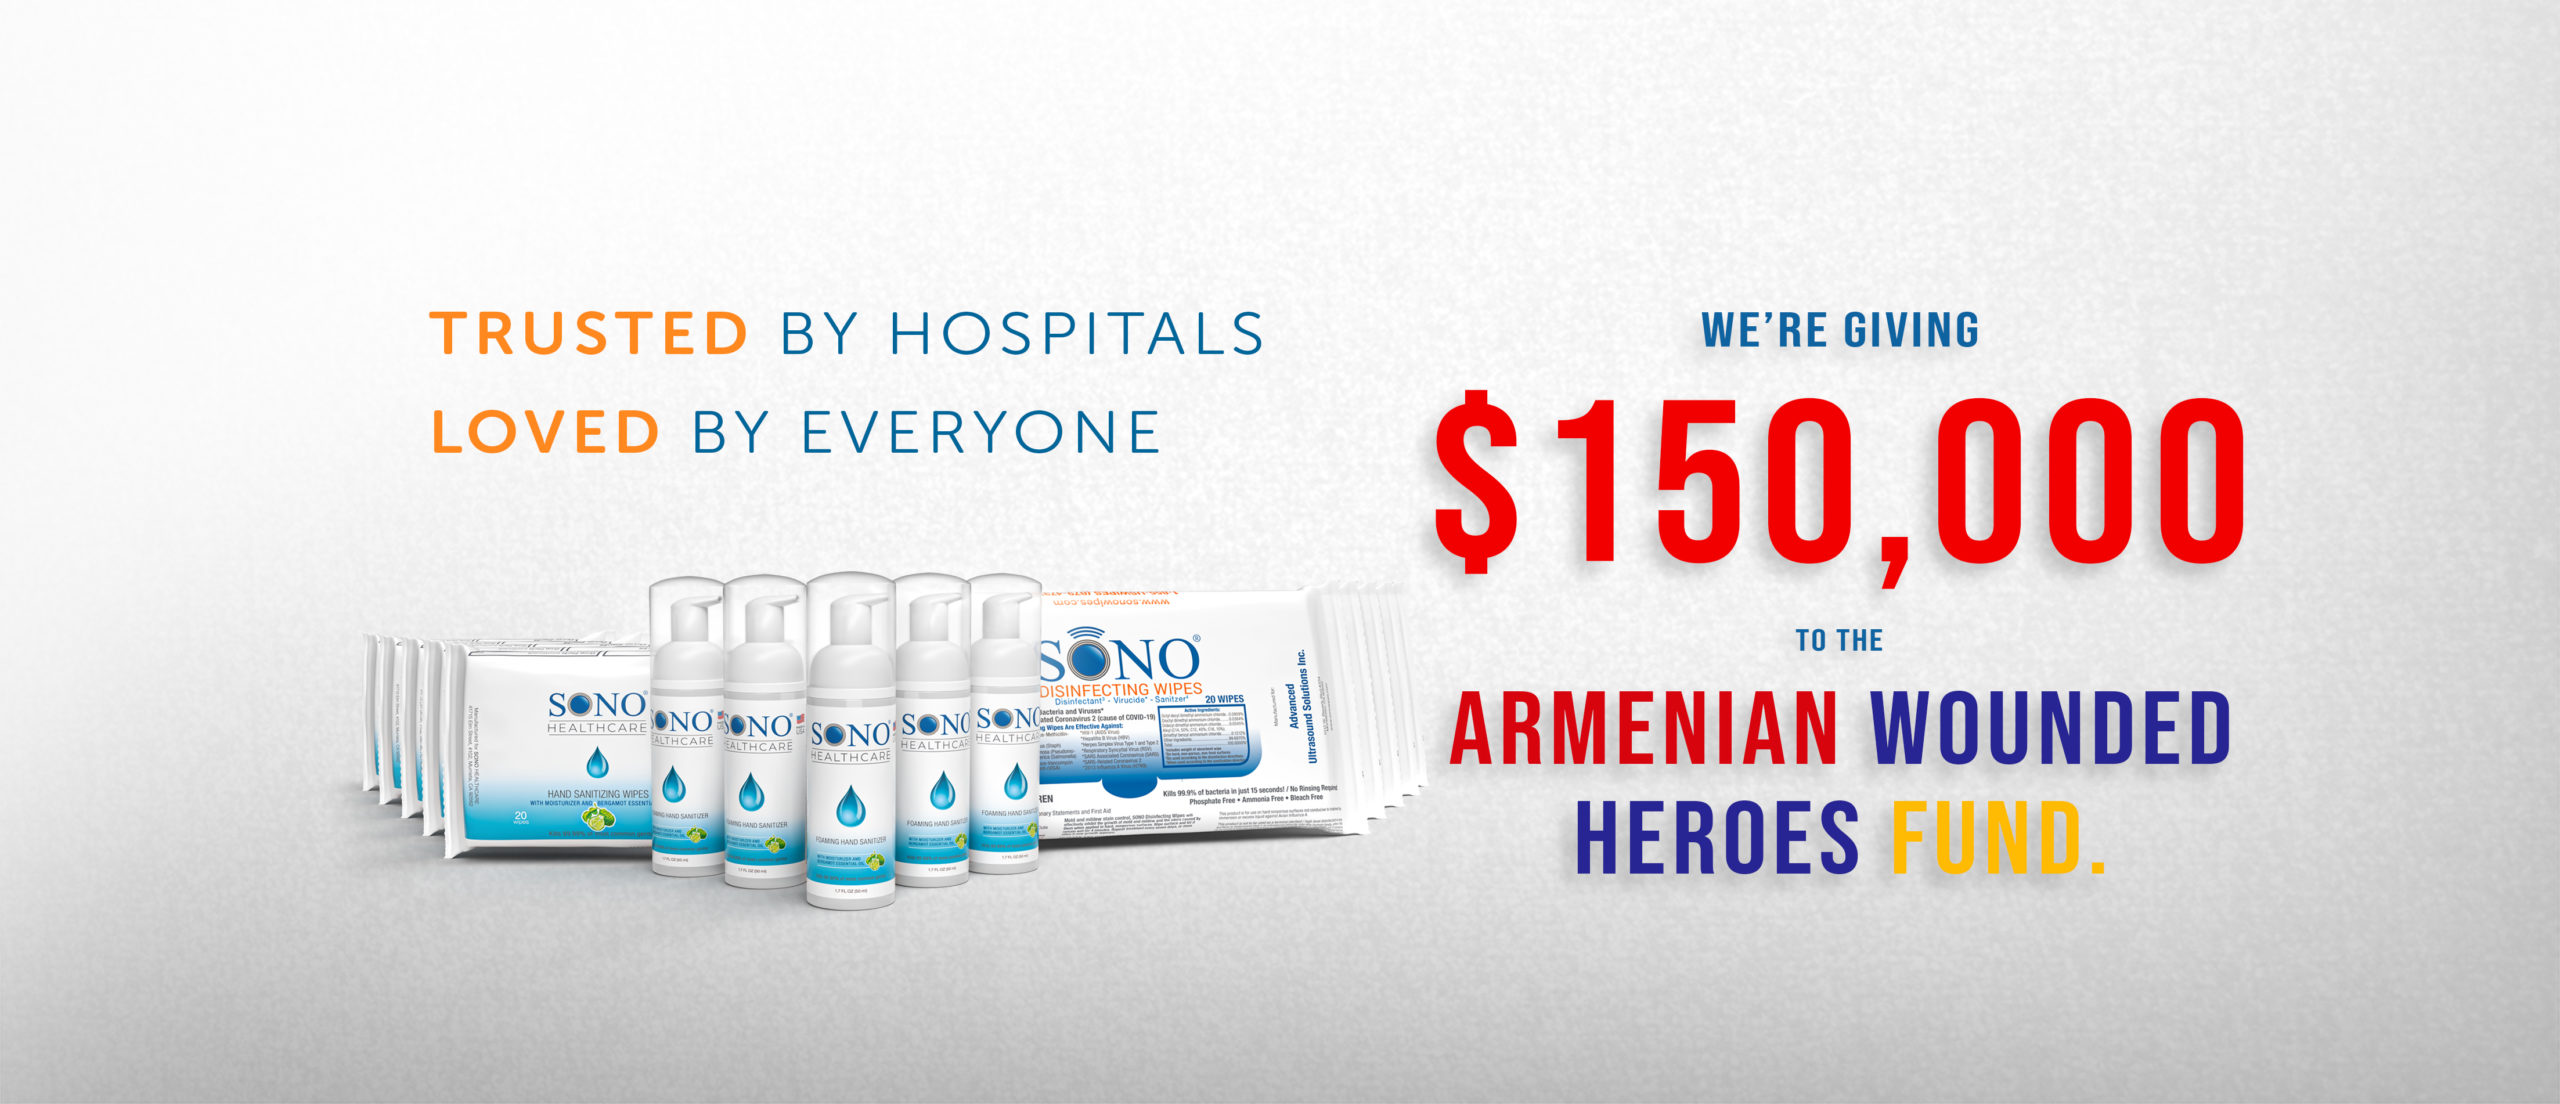 SONO Wipes. Trusted By Hospitals. Loved by Everyone. We're donating $150,000 to the Armenian Wounded Heroes Fund